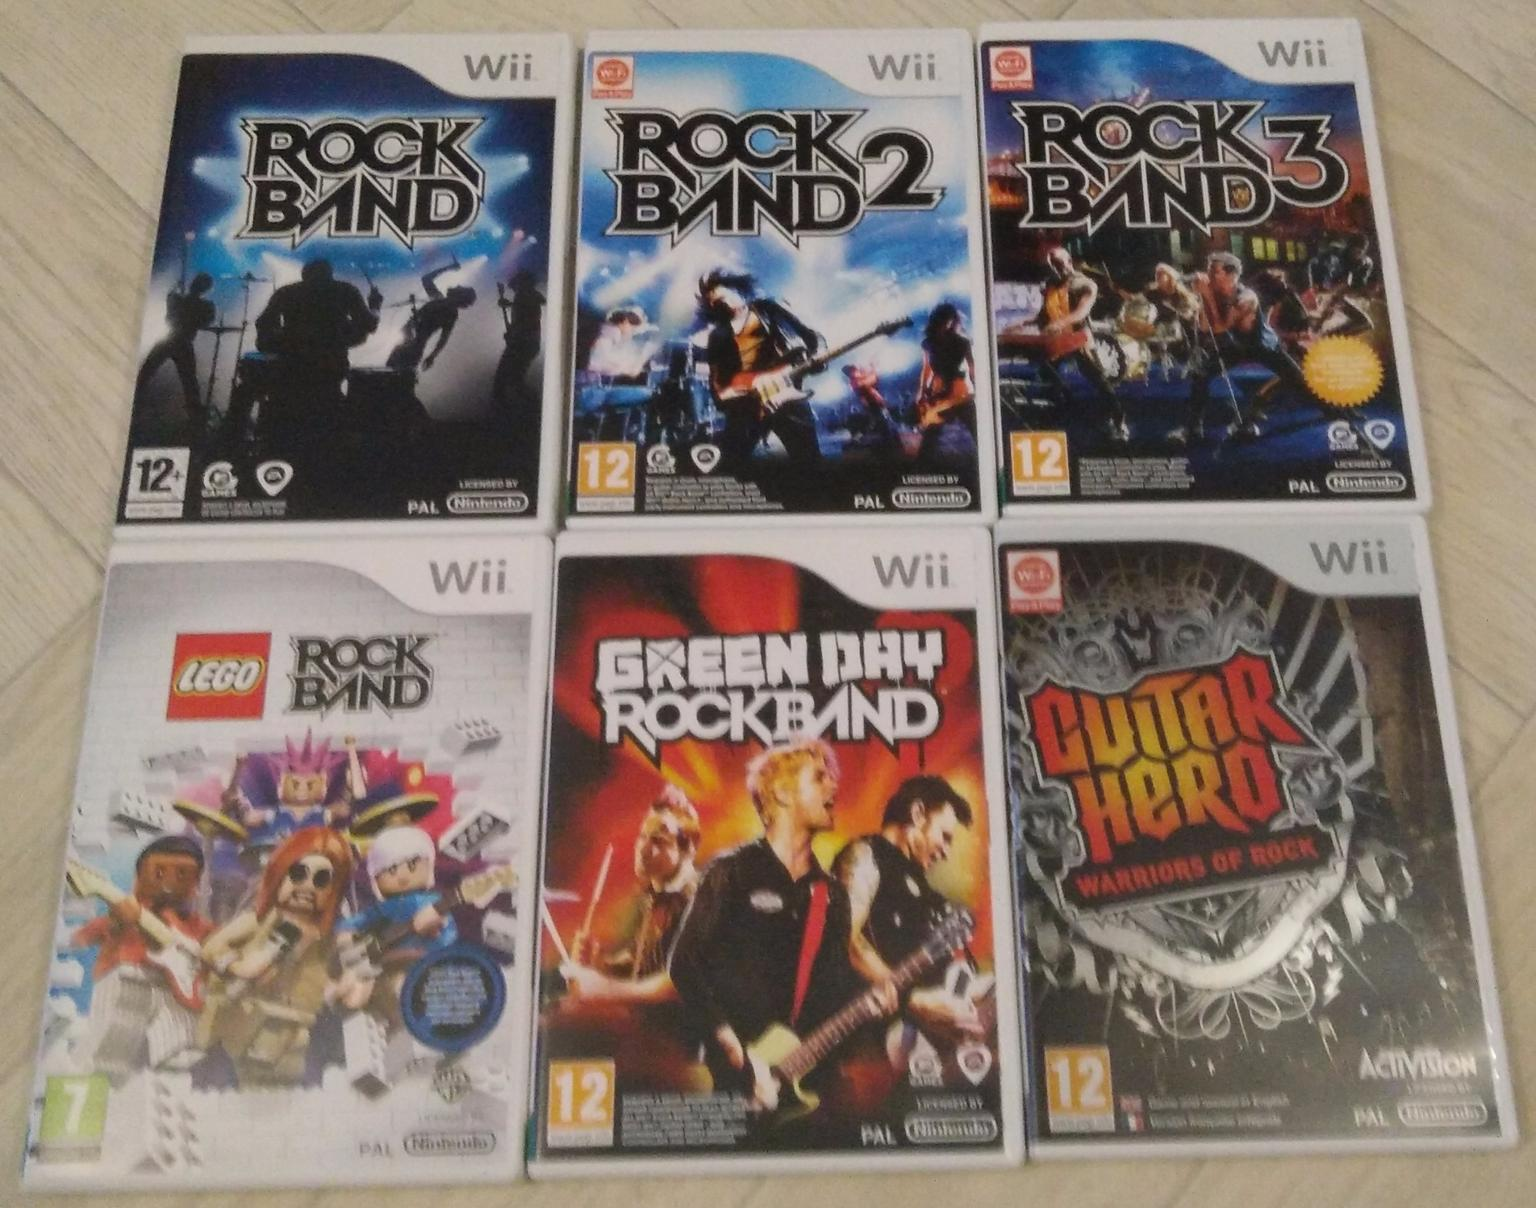 Complete Wii Band Hero, Guitar Hero and games